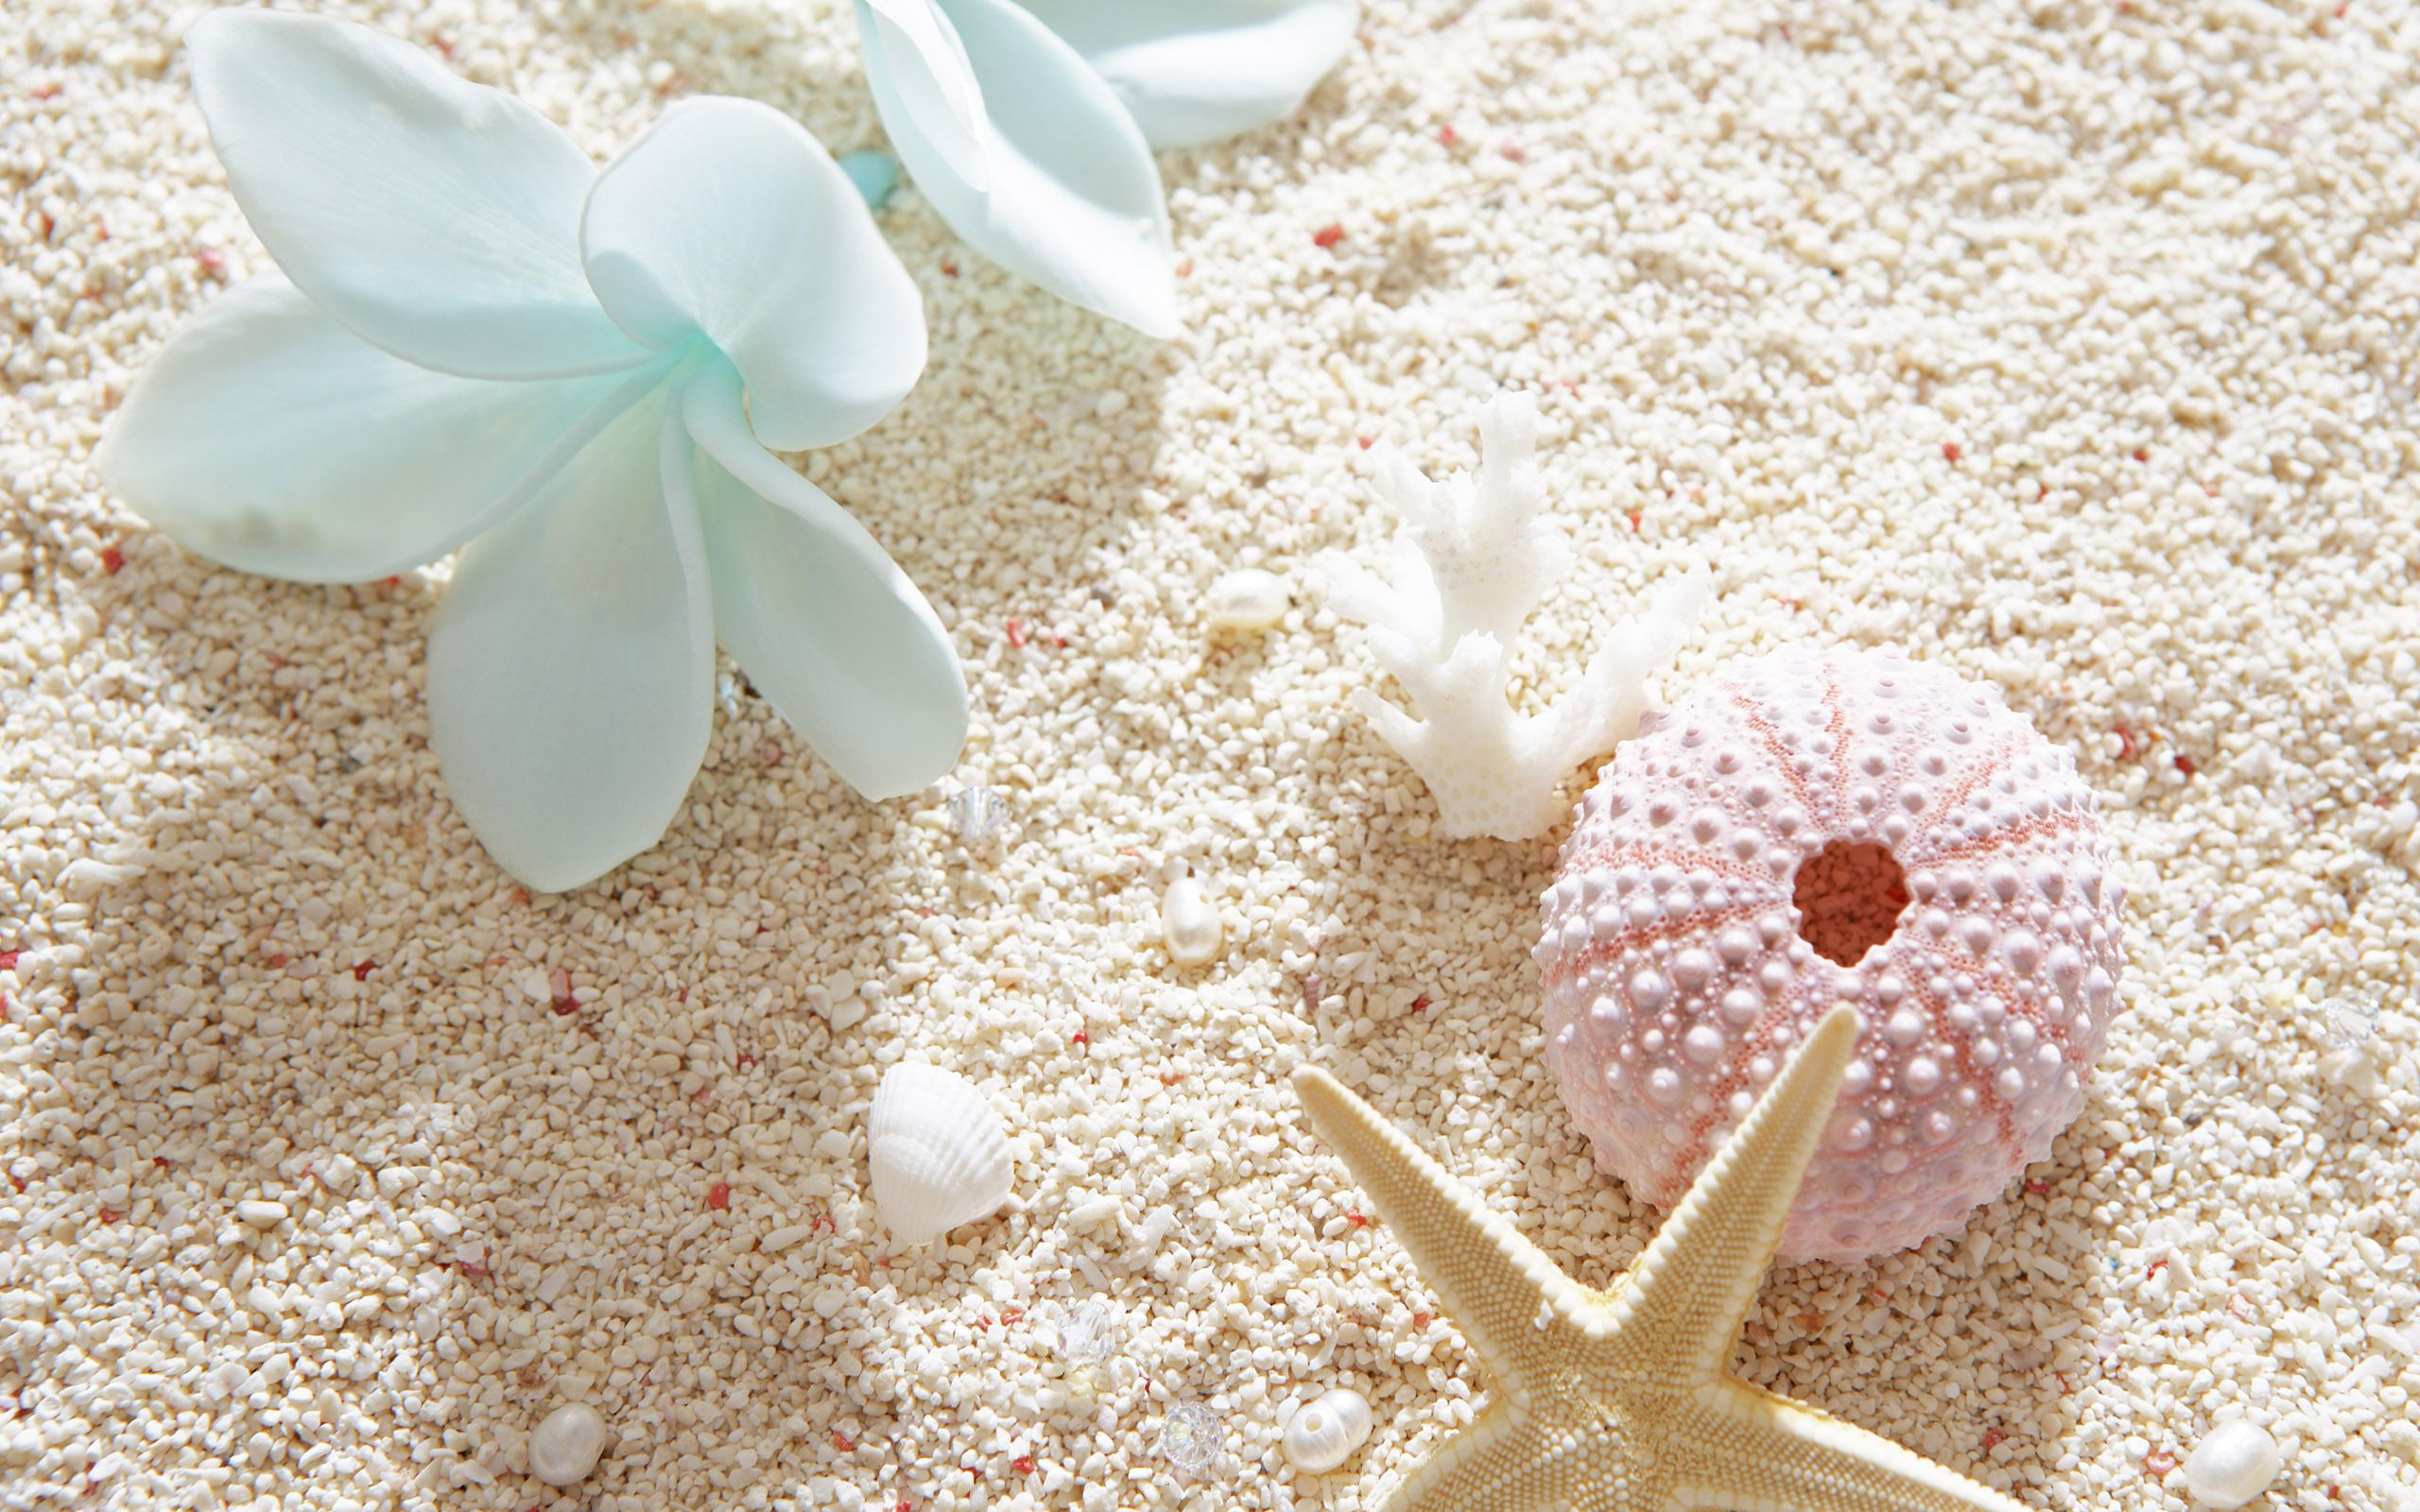 beach seashells pictures – images and photos download 7069